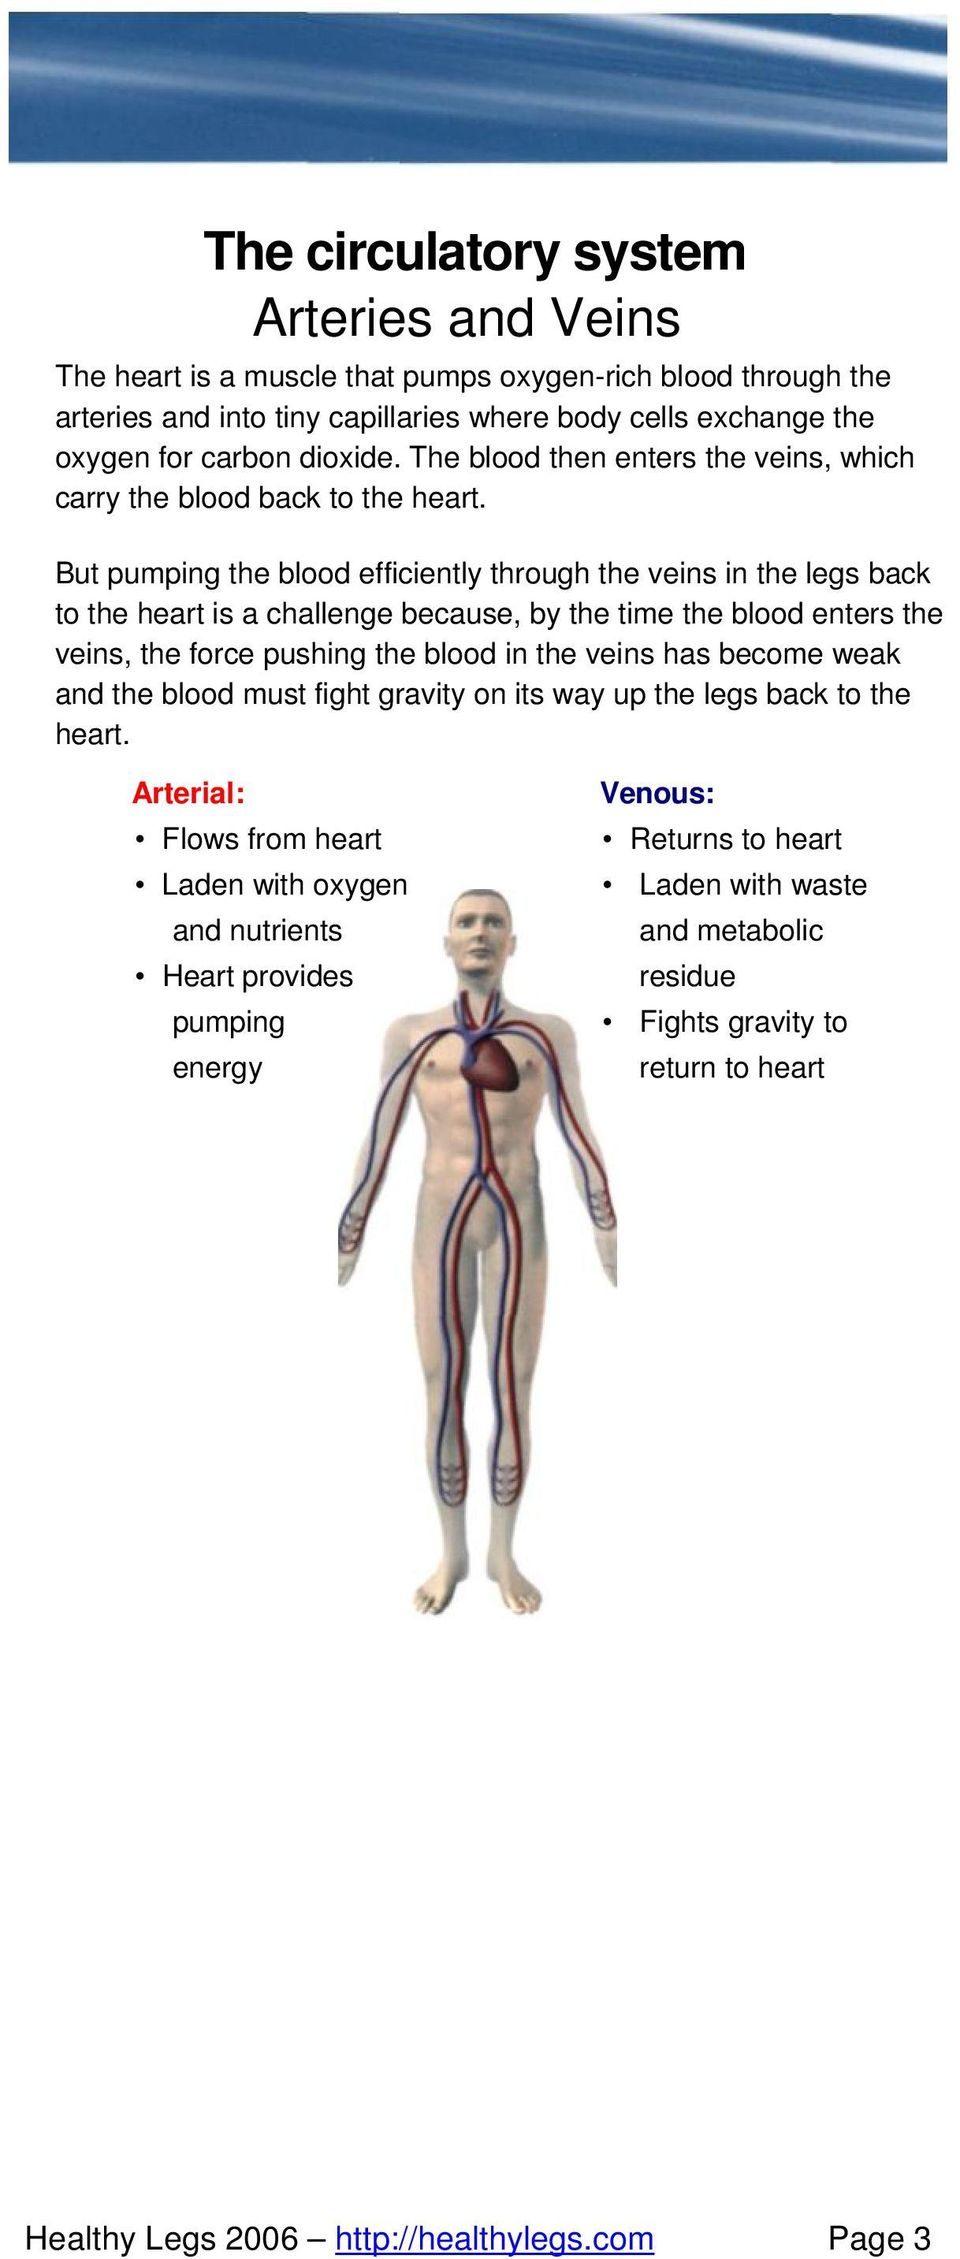 But pumping the blood efficiently through the veins in the legs back to the heart is a challenge because, by the time the blood enters the veins, the force pushing the blood in the veins has